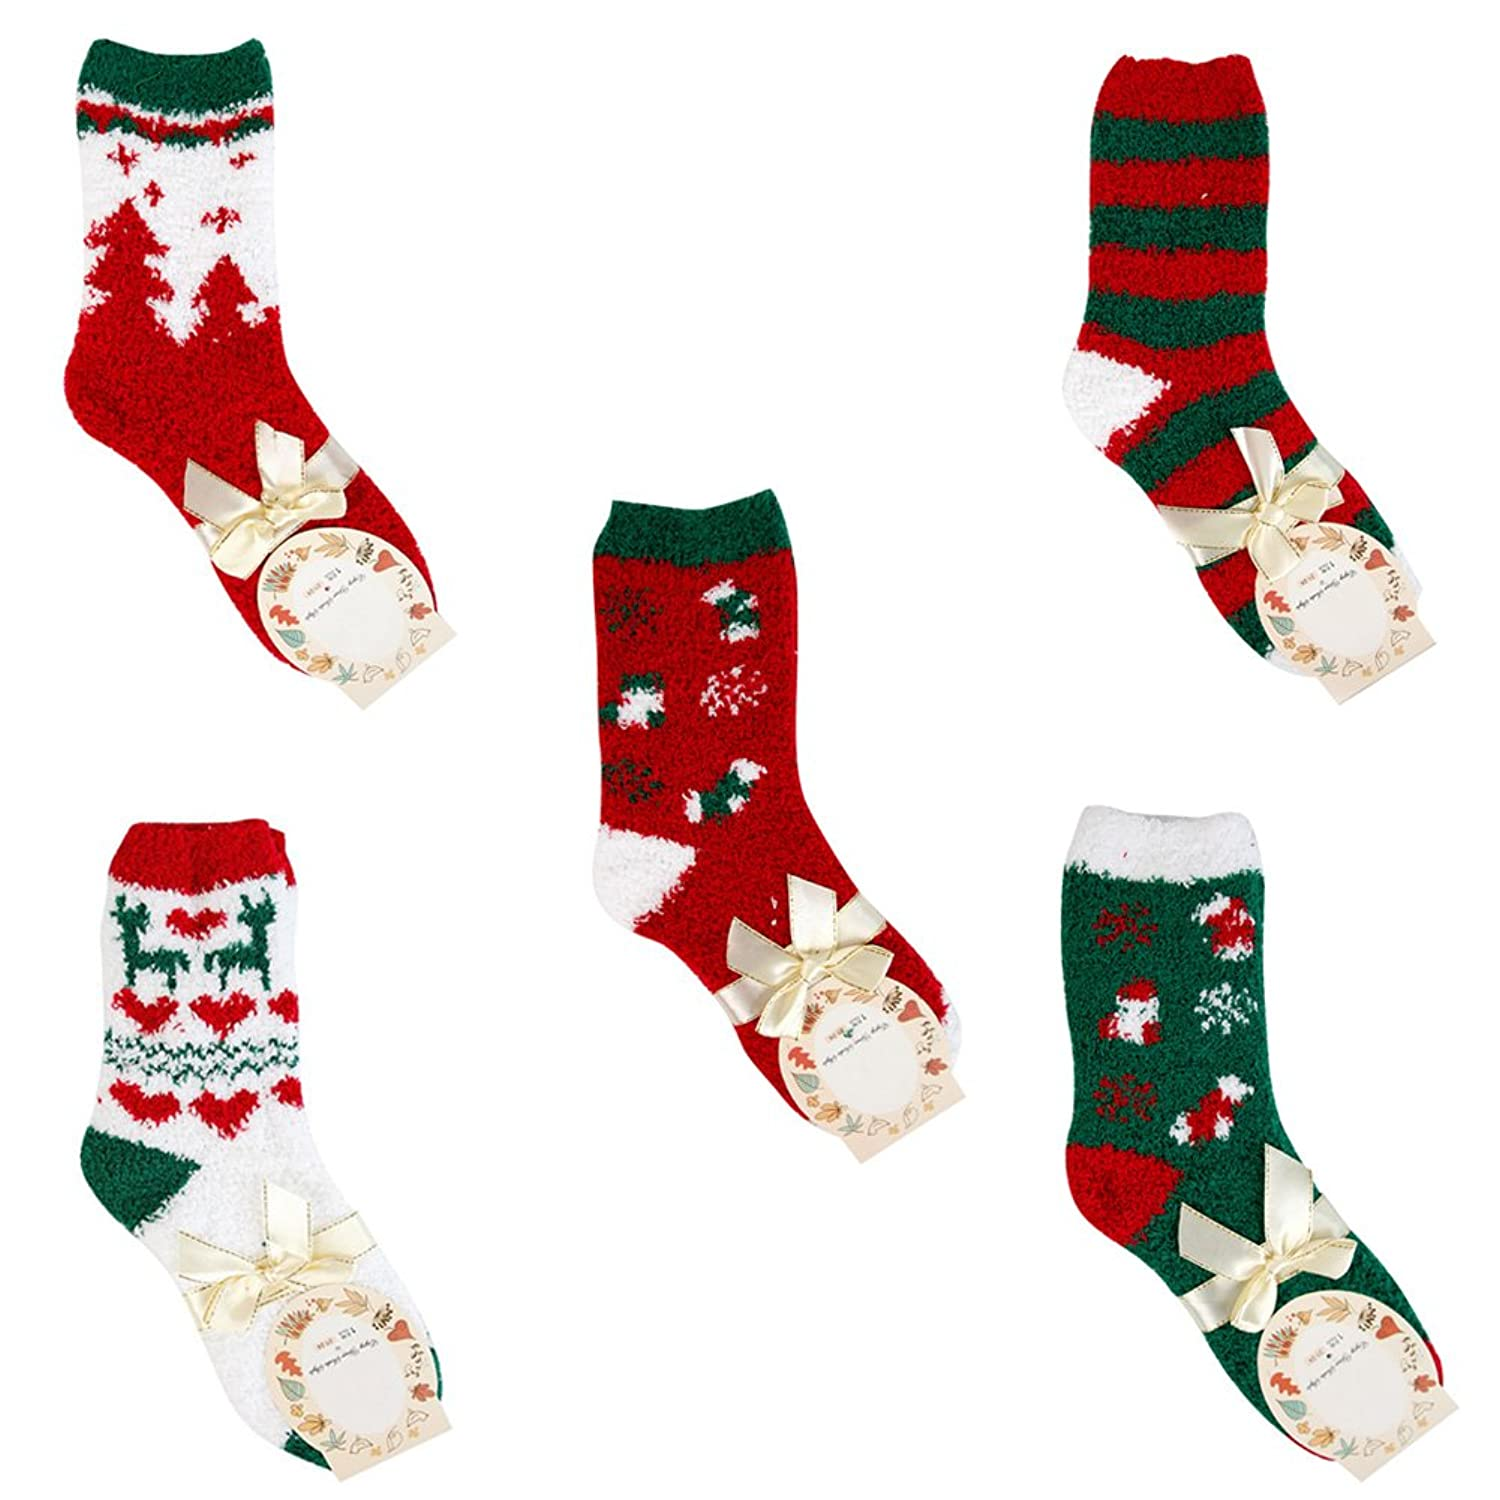 Lisli Fashion 5 Pairs Christmas Woman Men Soft Warm Winter Cozy Socks New Year Gift